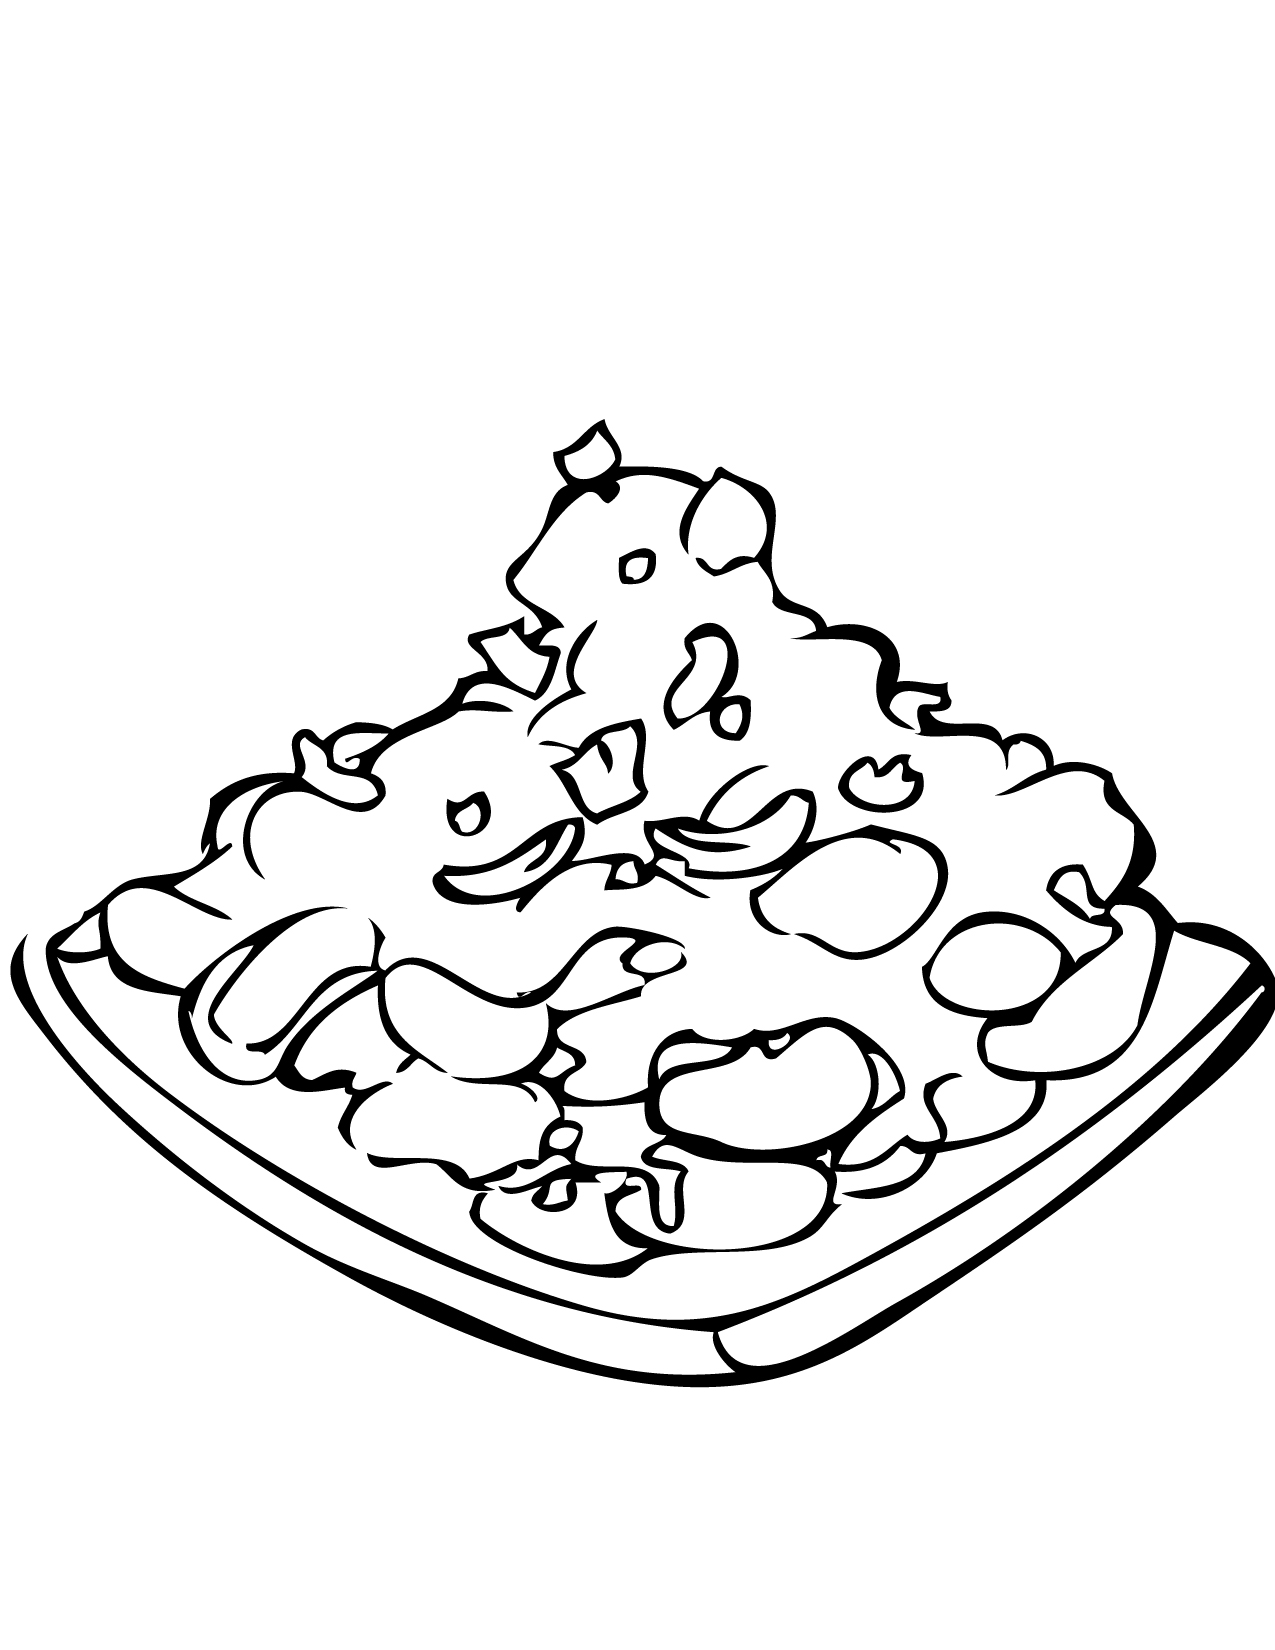 Kung Pao Chicken Coloring Page